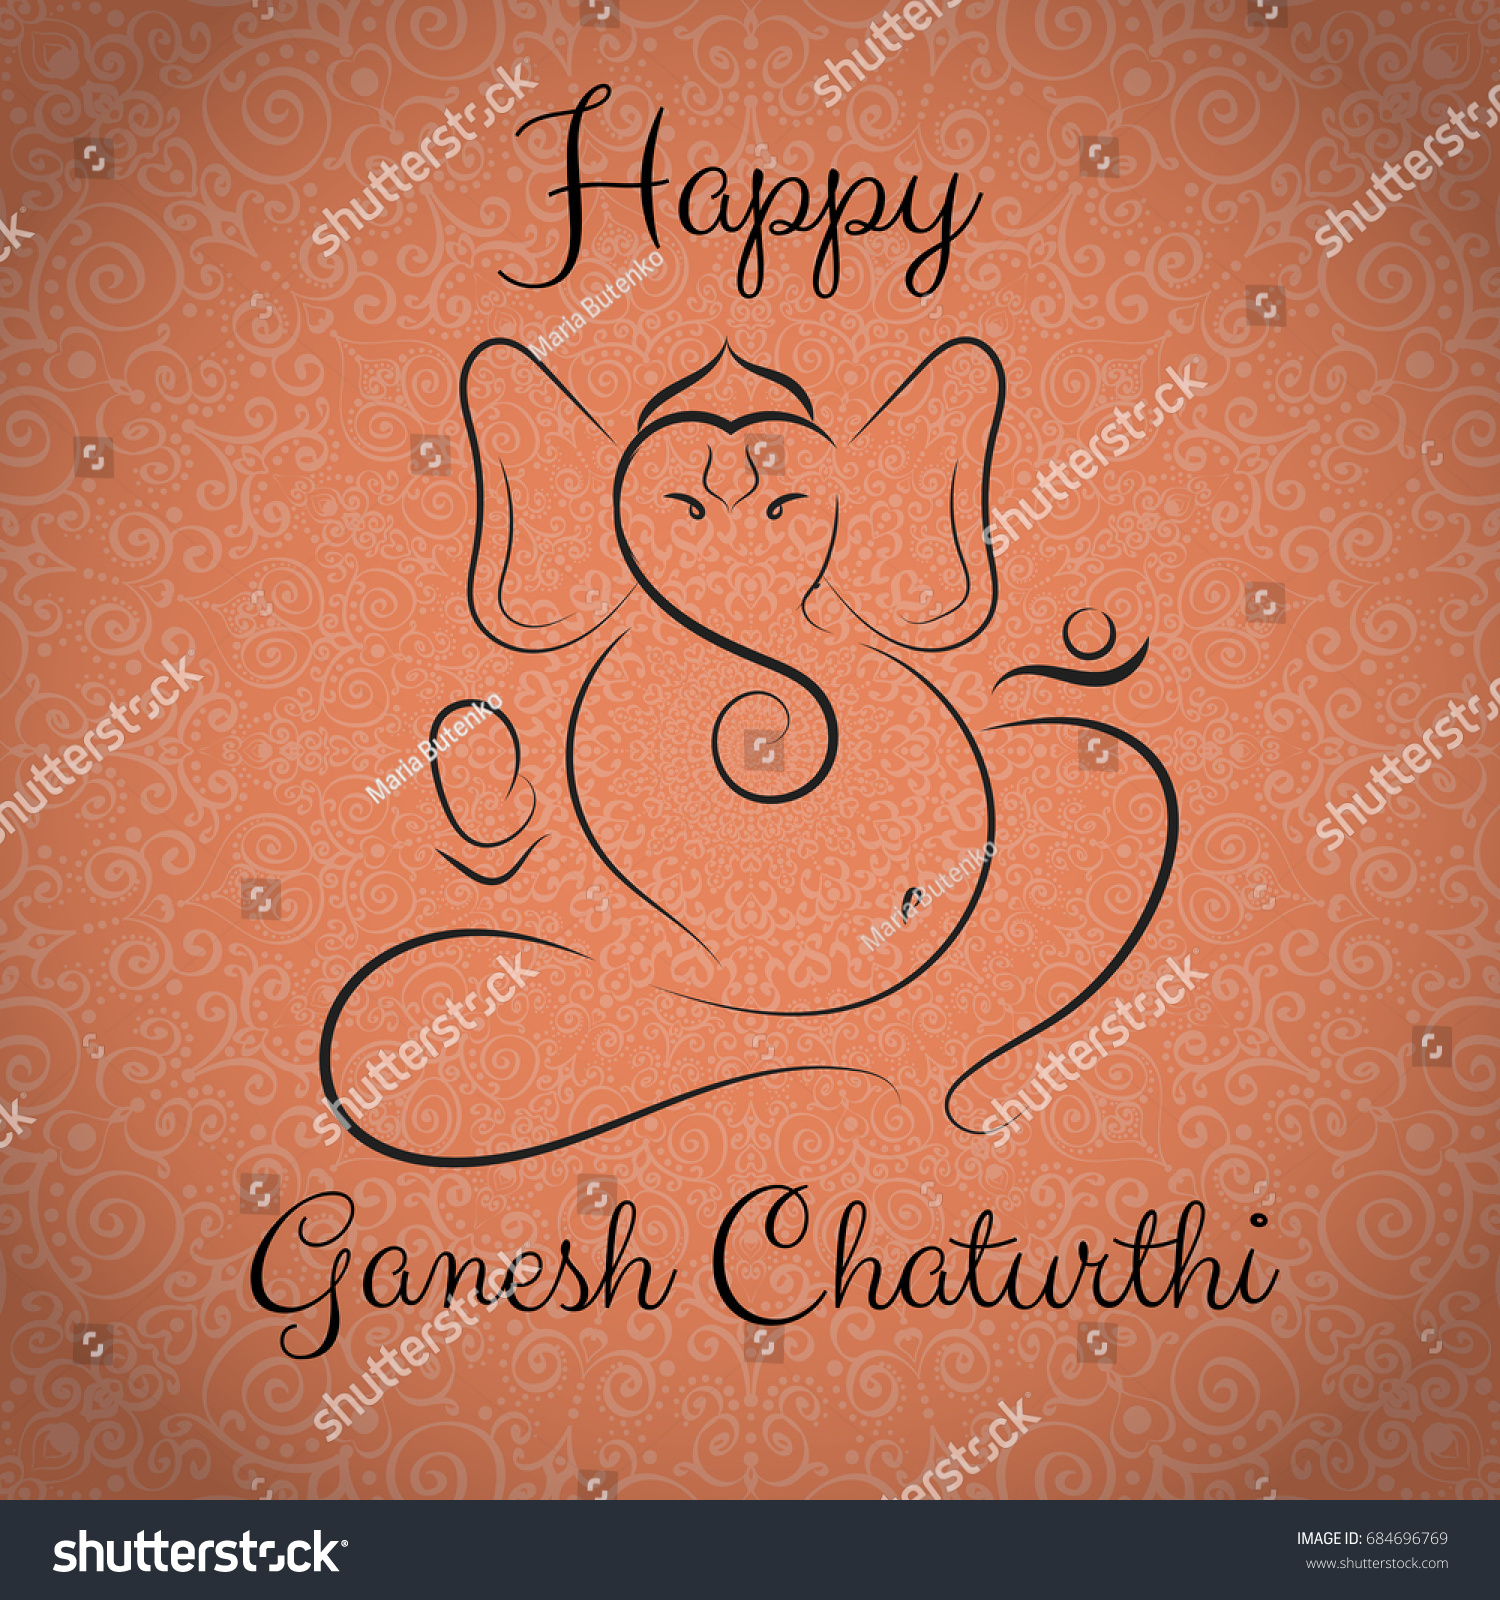 Ganesh Chaturthi Festival Greeting Card Template Stock Vector